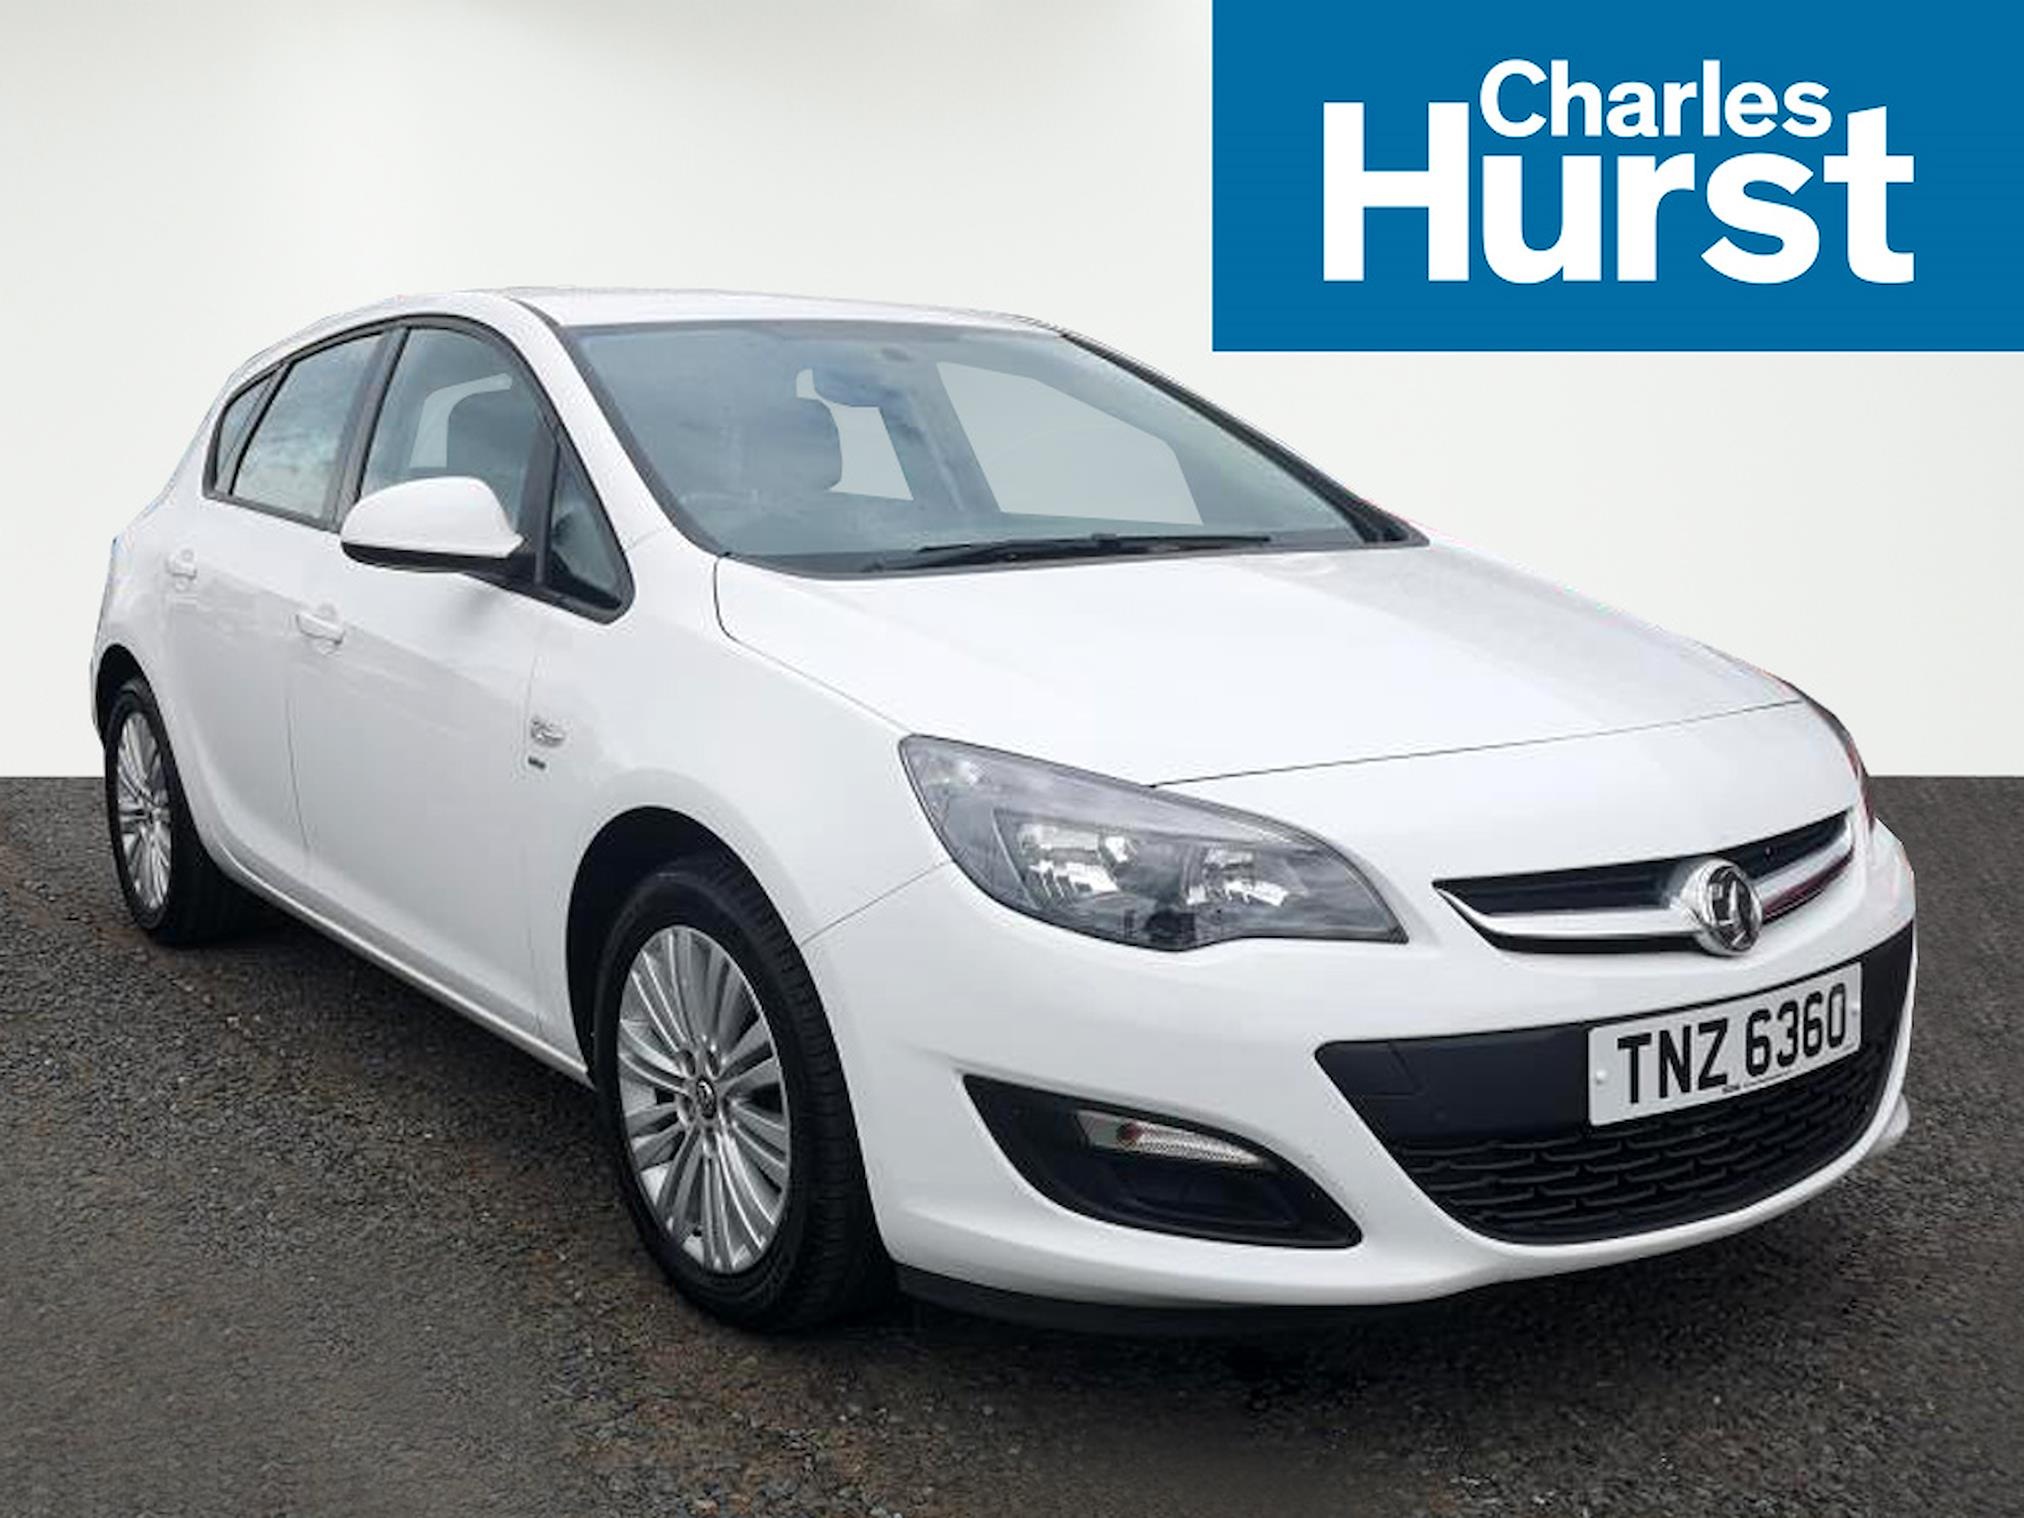 28959e5b4c6 Used ASTRA VAUXHALL 1.7 Cdti 16V Ecoflex Energy 5Dr 2014 | Lookers